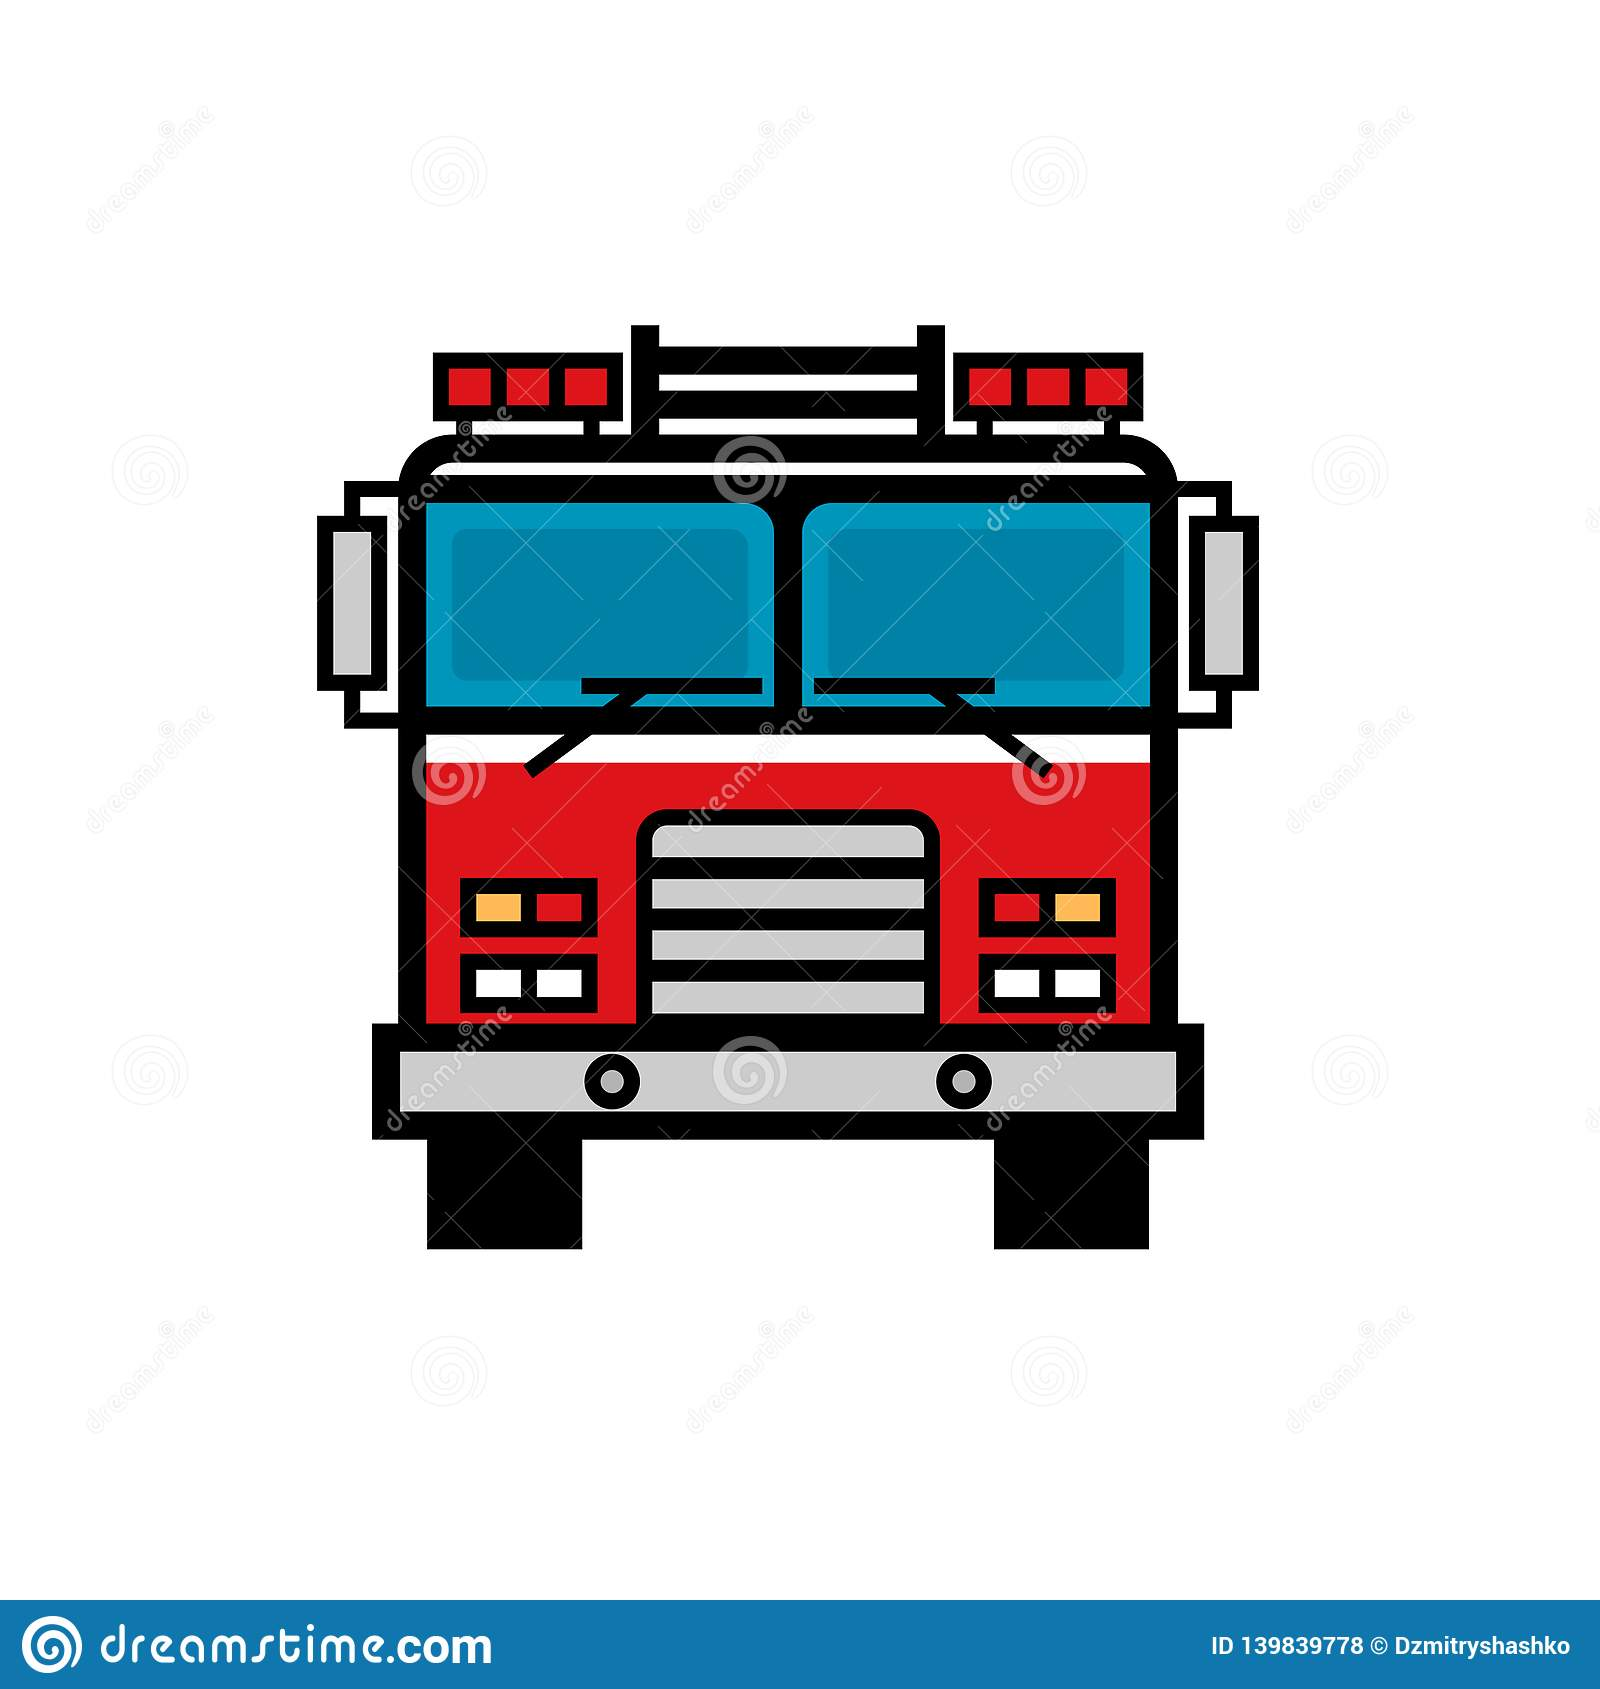 hight resolution of firetruck front view filled outline icon clipart image isolated on white background